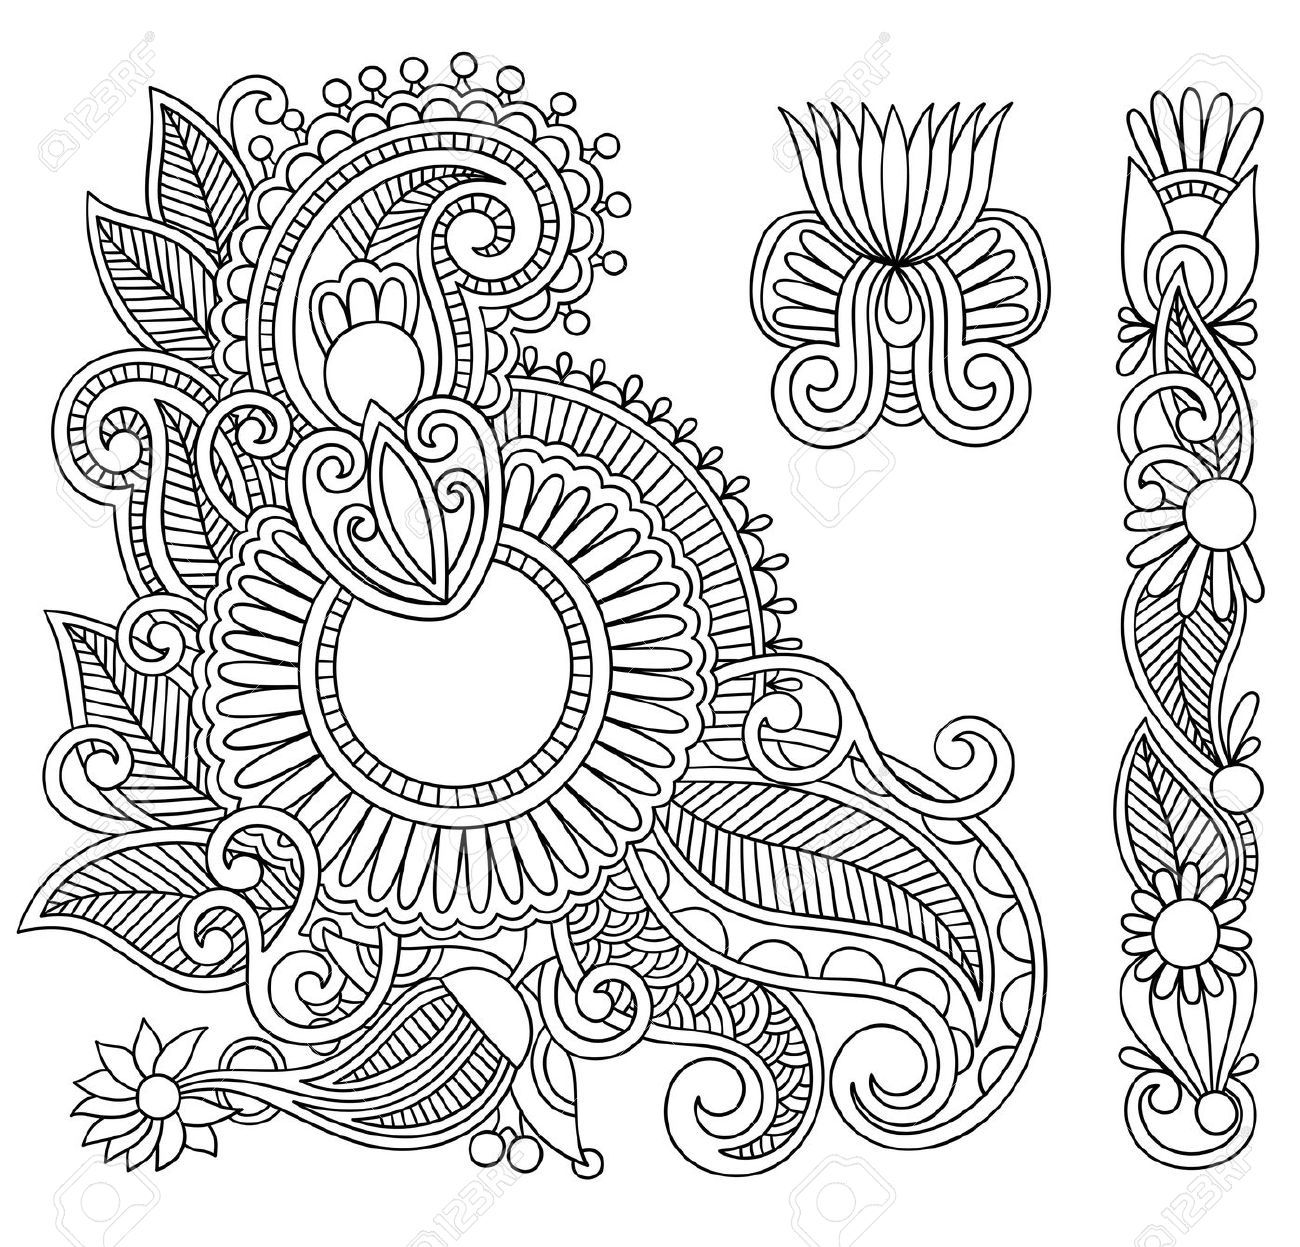 11189567 Hand Drawn Abstract Henna Mehndi Black Flowers Doodle Illustration Design Element Stock V Henna Designs Drawing Henna Drawings Paisley Coloring Pages